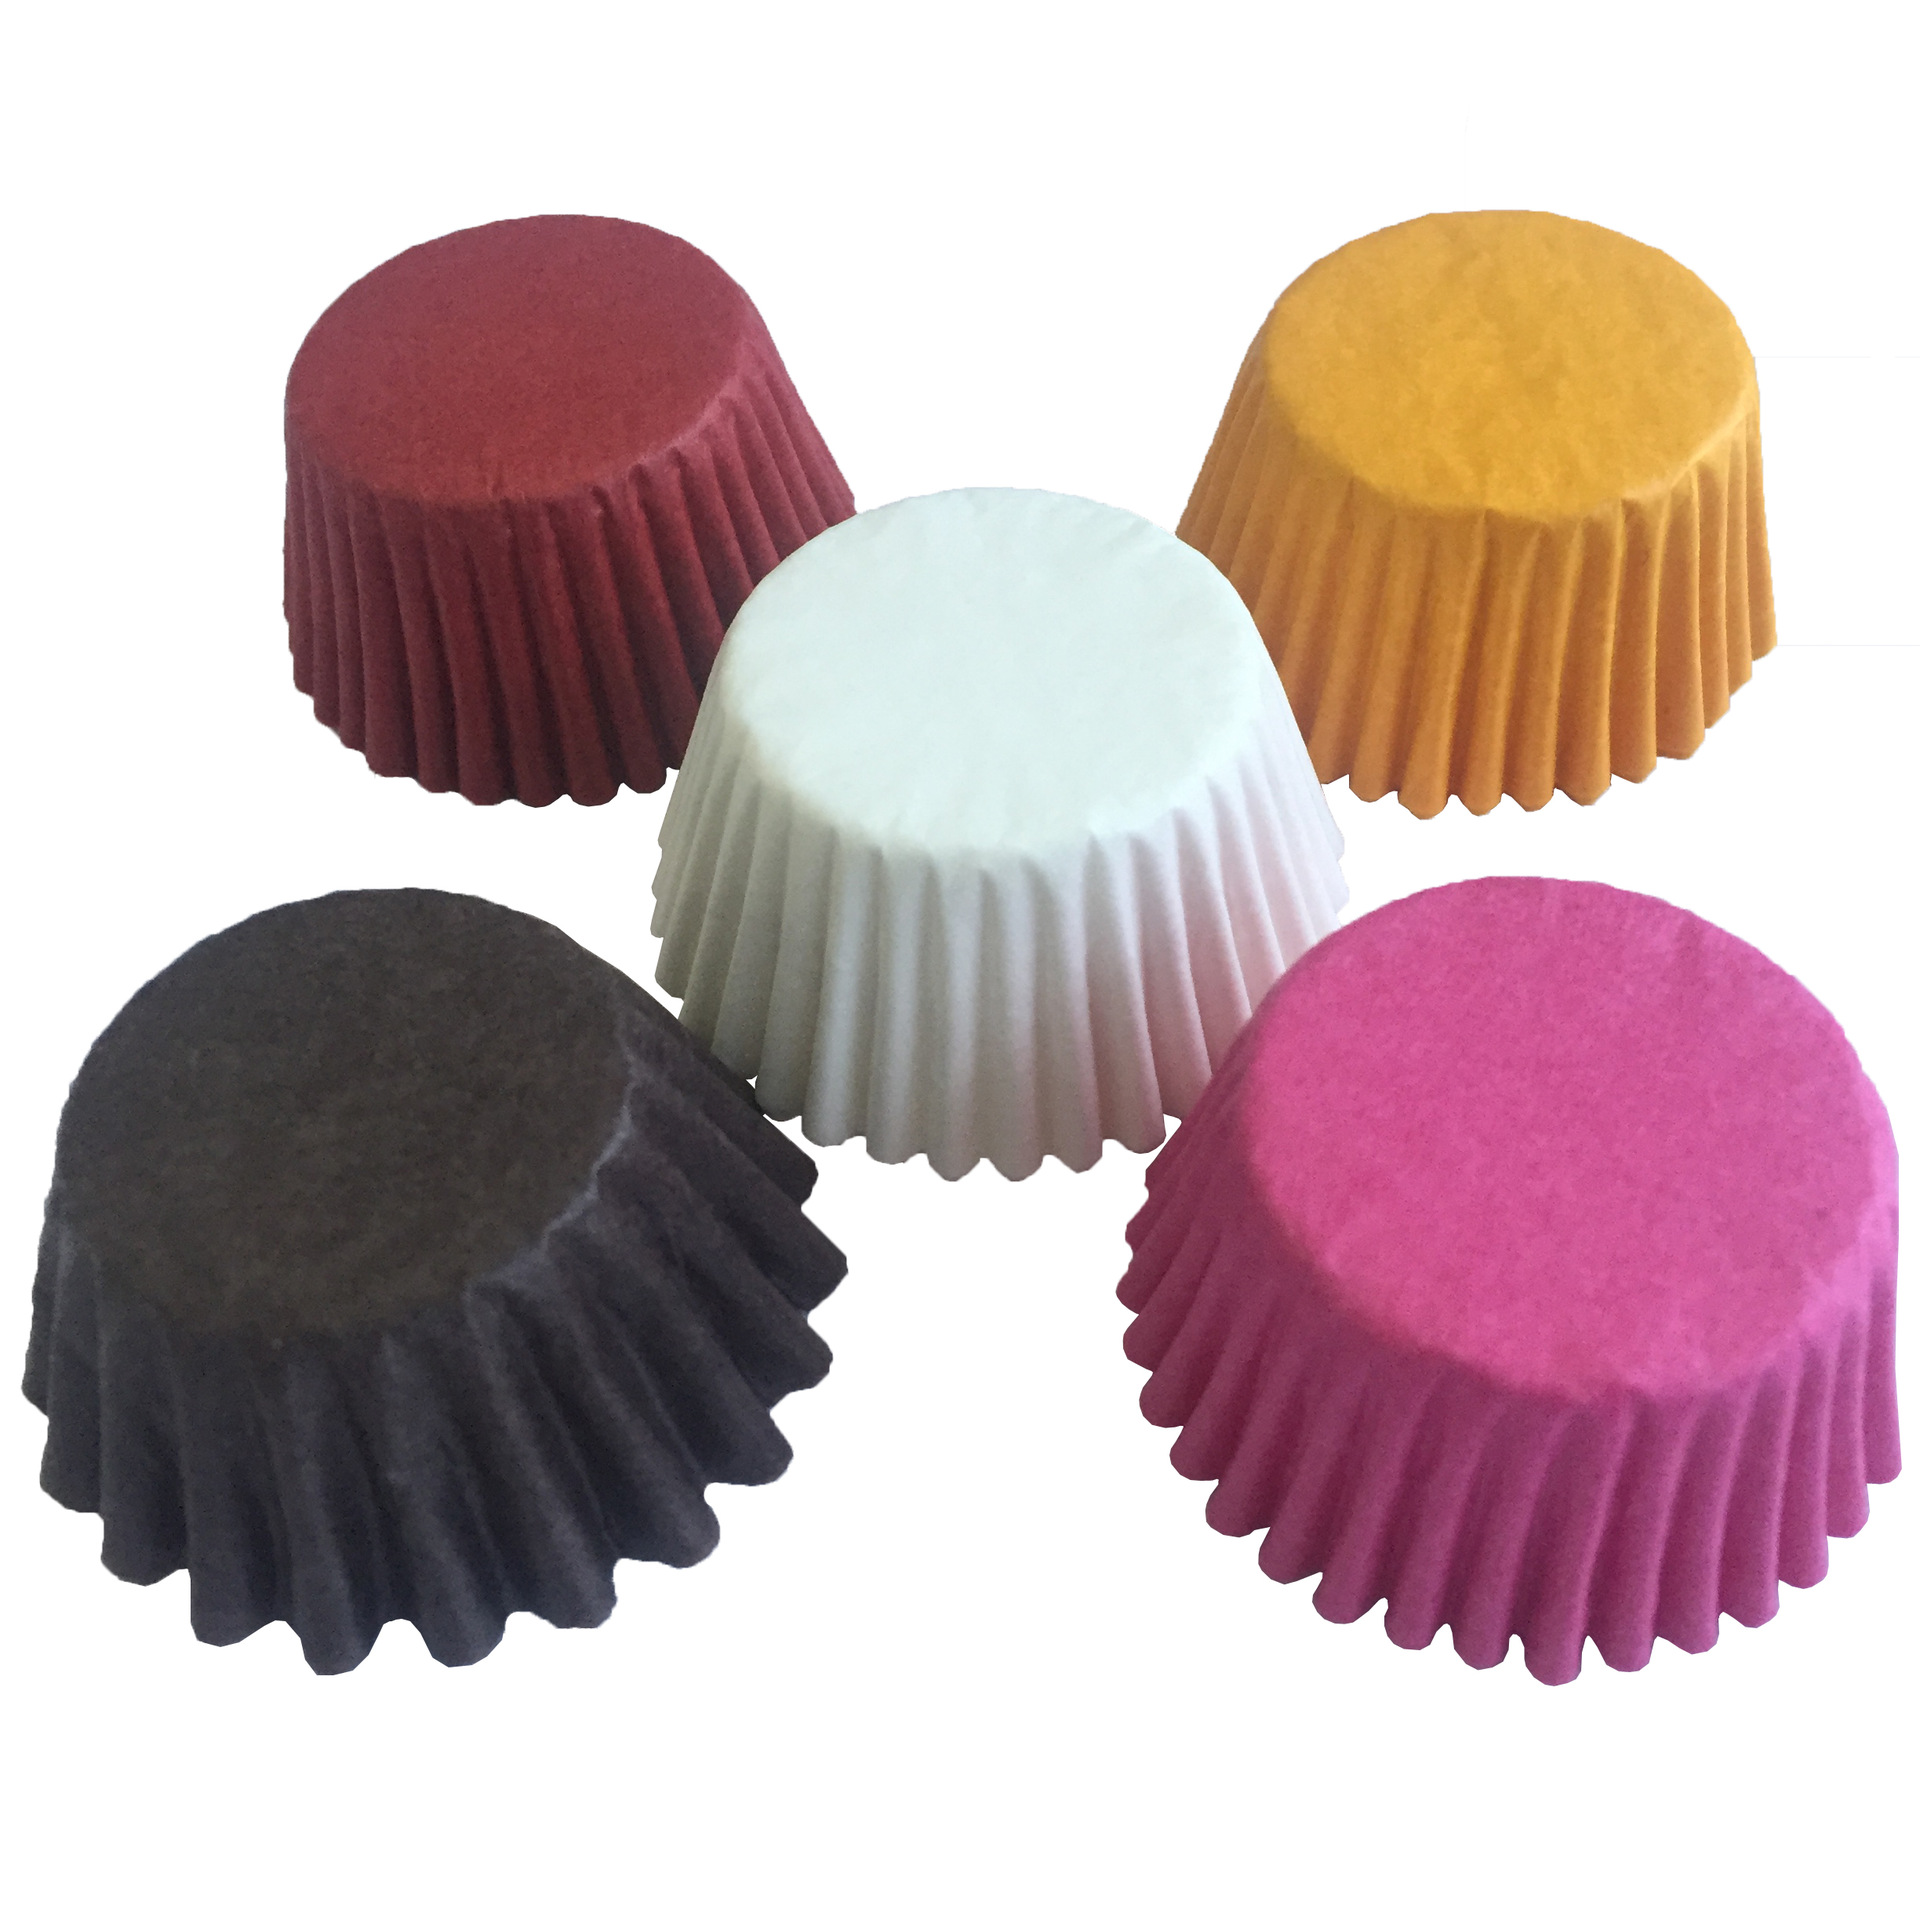 500&1000 pcs 3 size Color Cupcake Liner Baking Cups Cupcake Mold Paper Muffin Cases Cake Decorating Tools E135(China (Mainland))